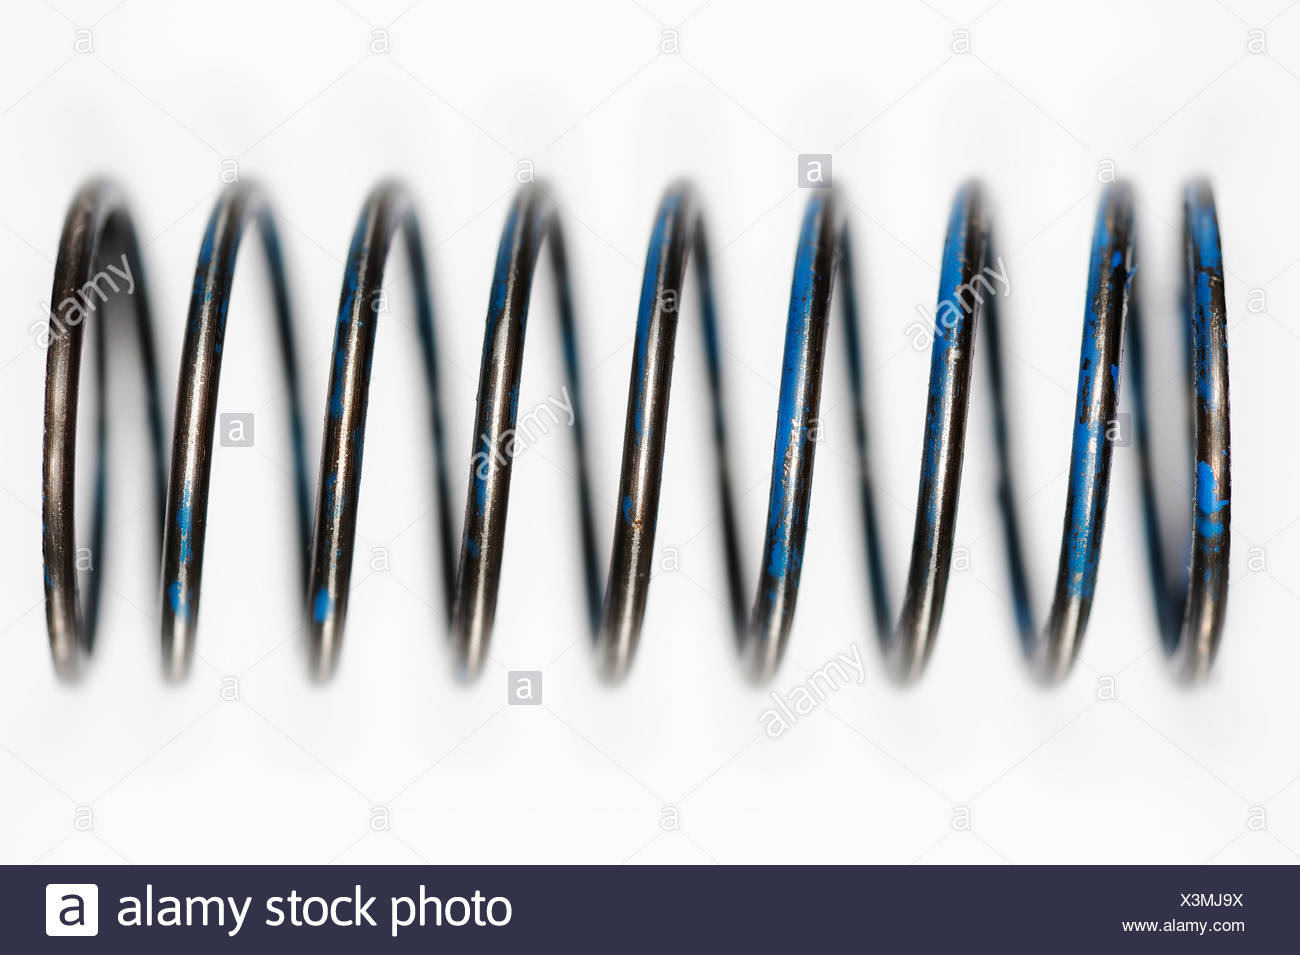 A spring - Stock Image